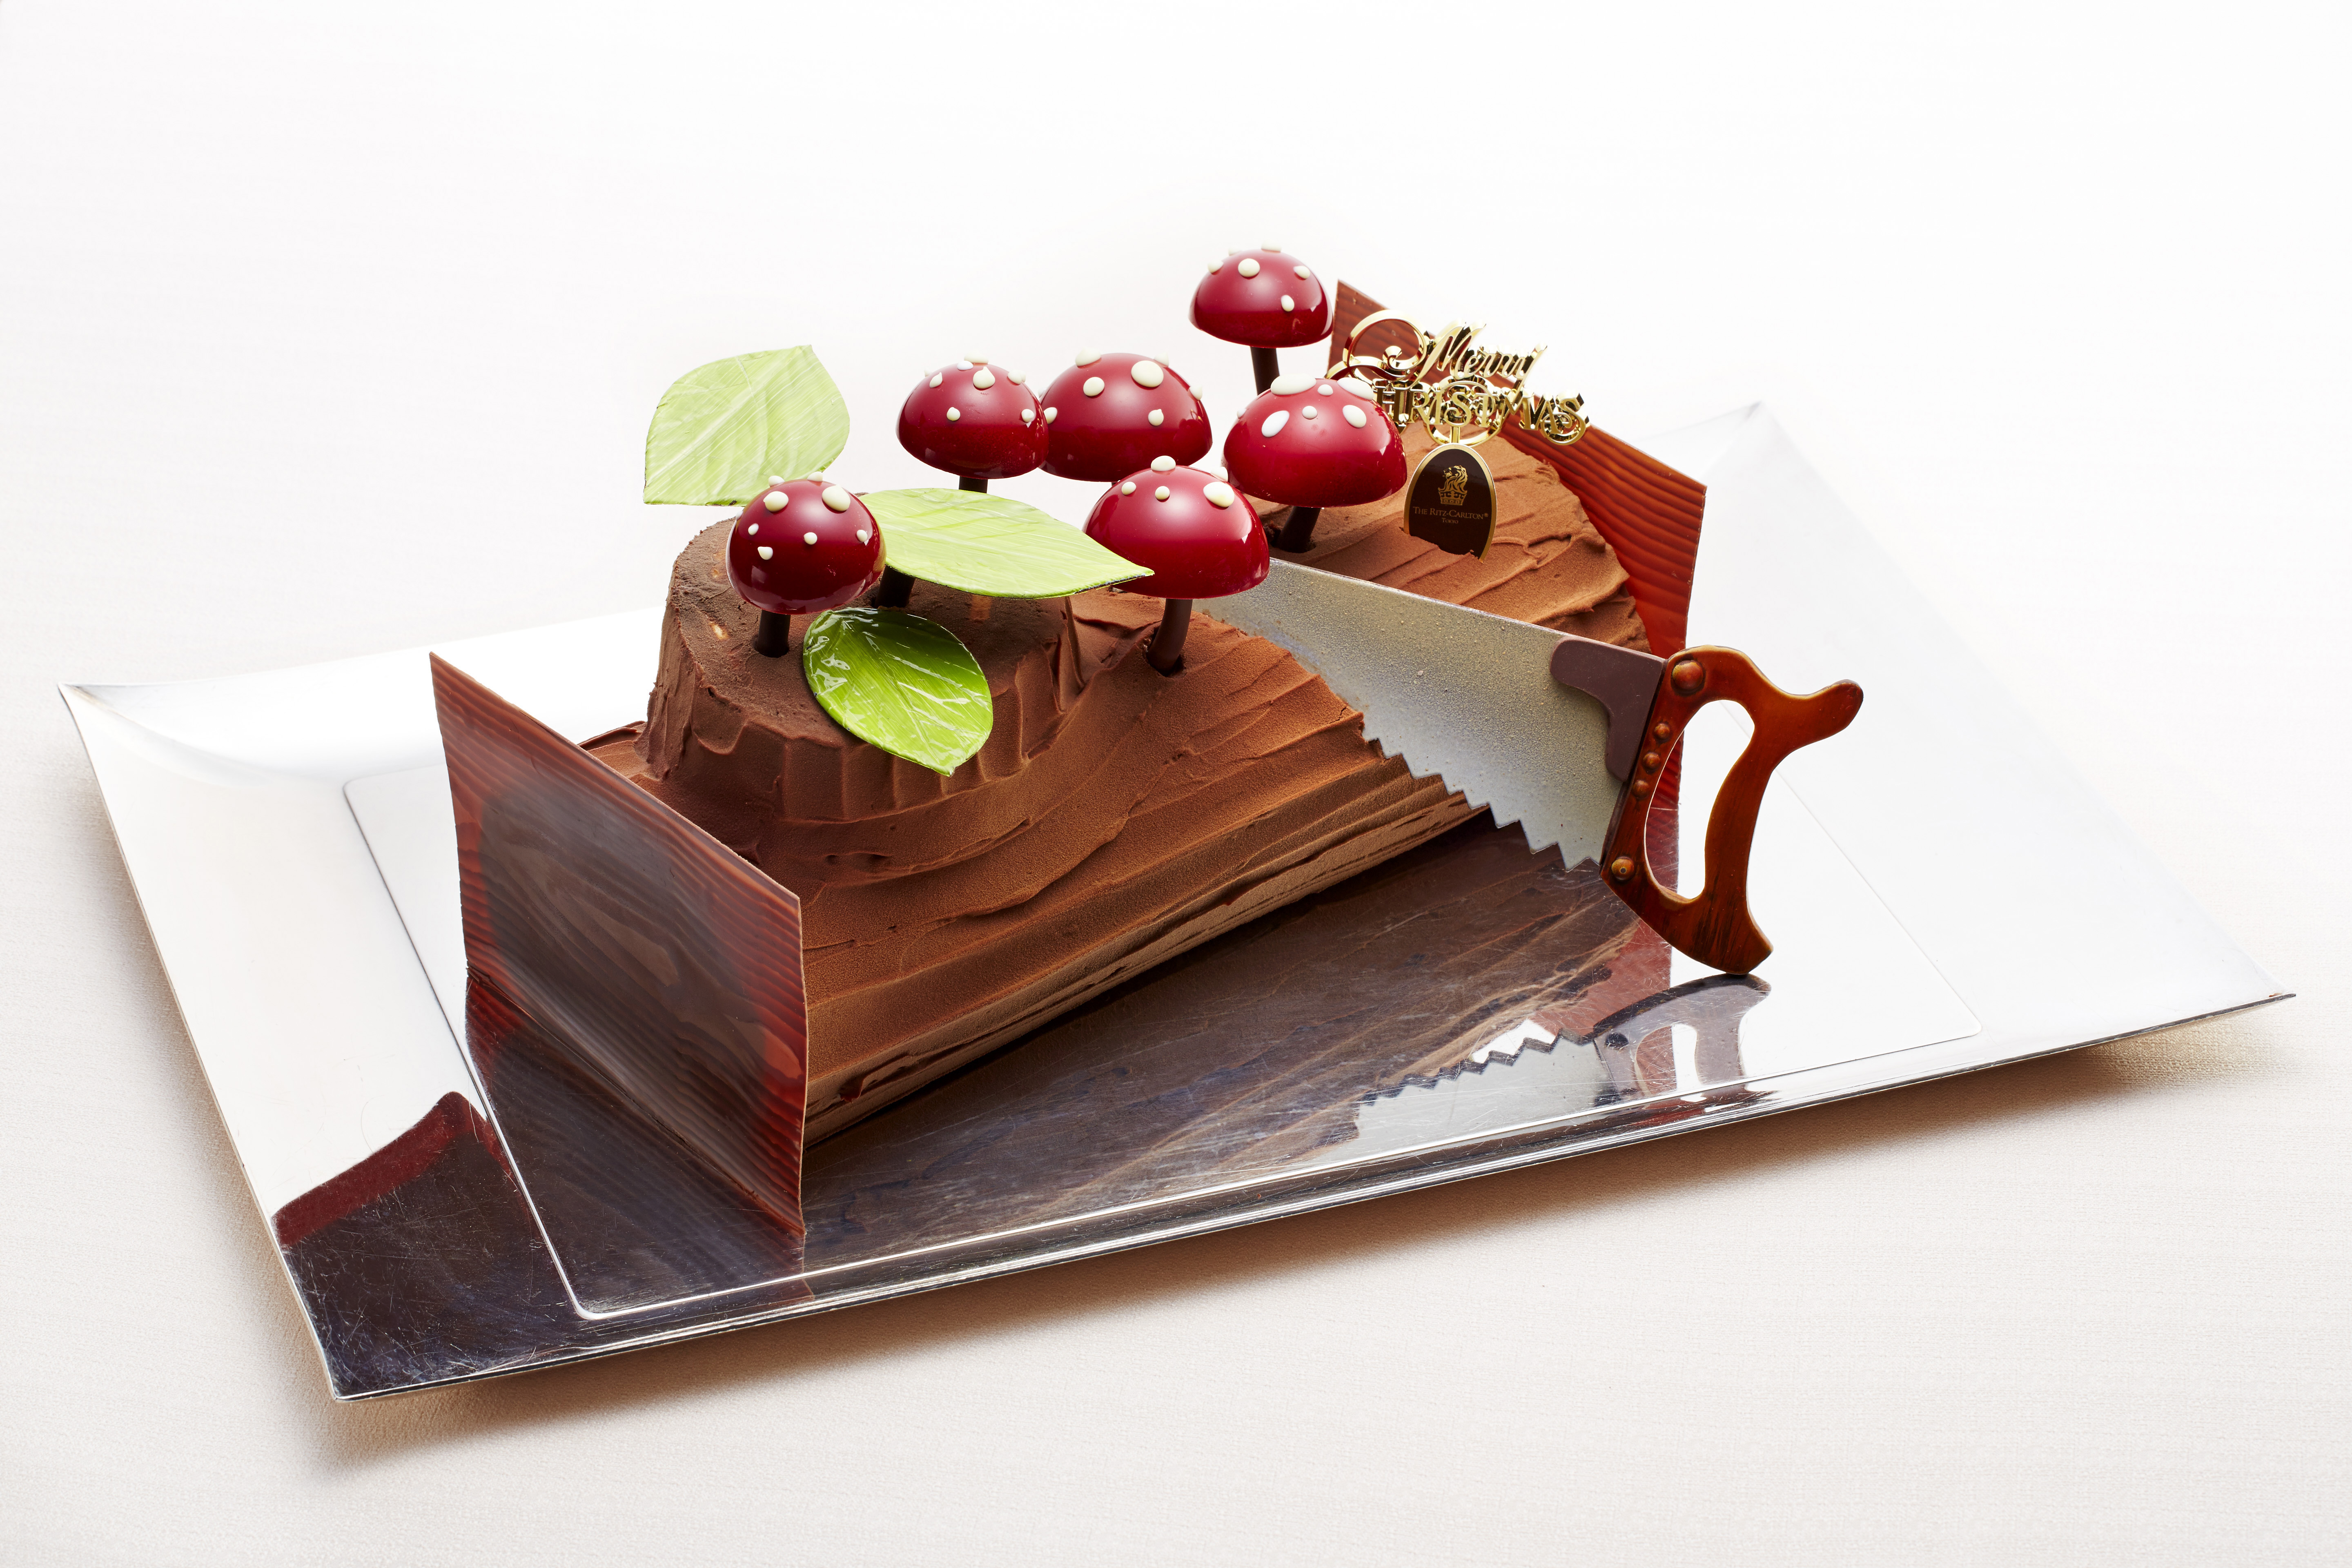 Buche De Noel Cafe christmas cake to ring in the holidays | the japan times